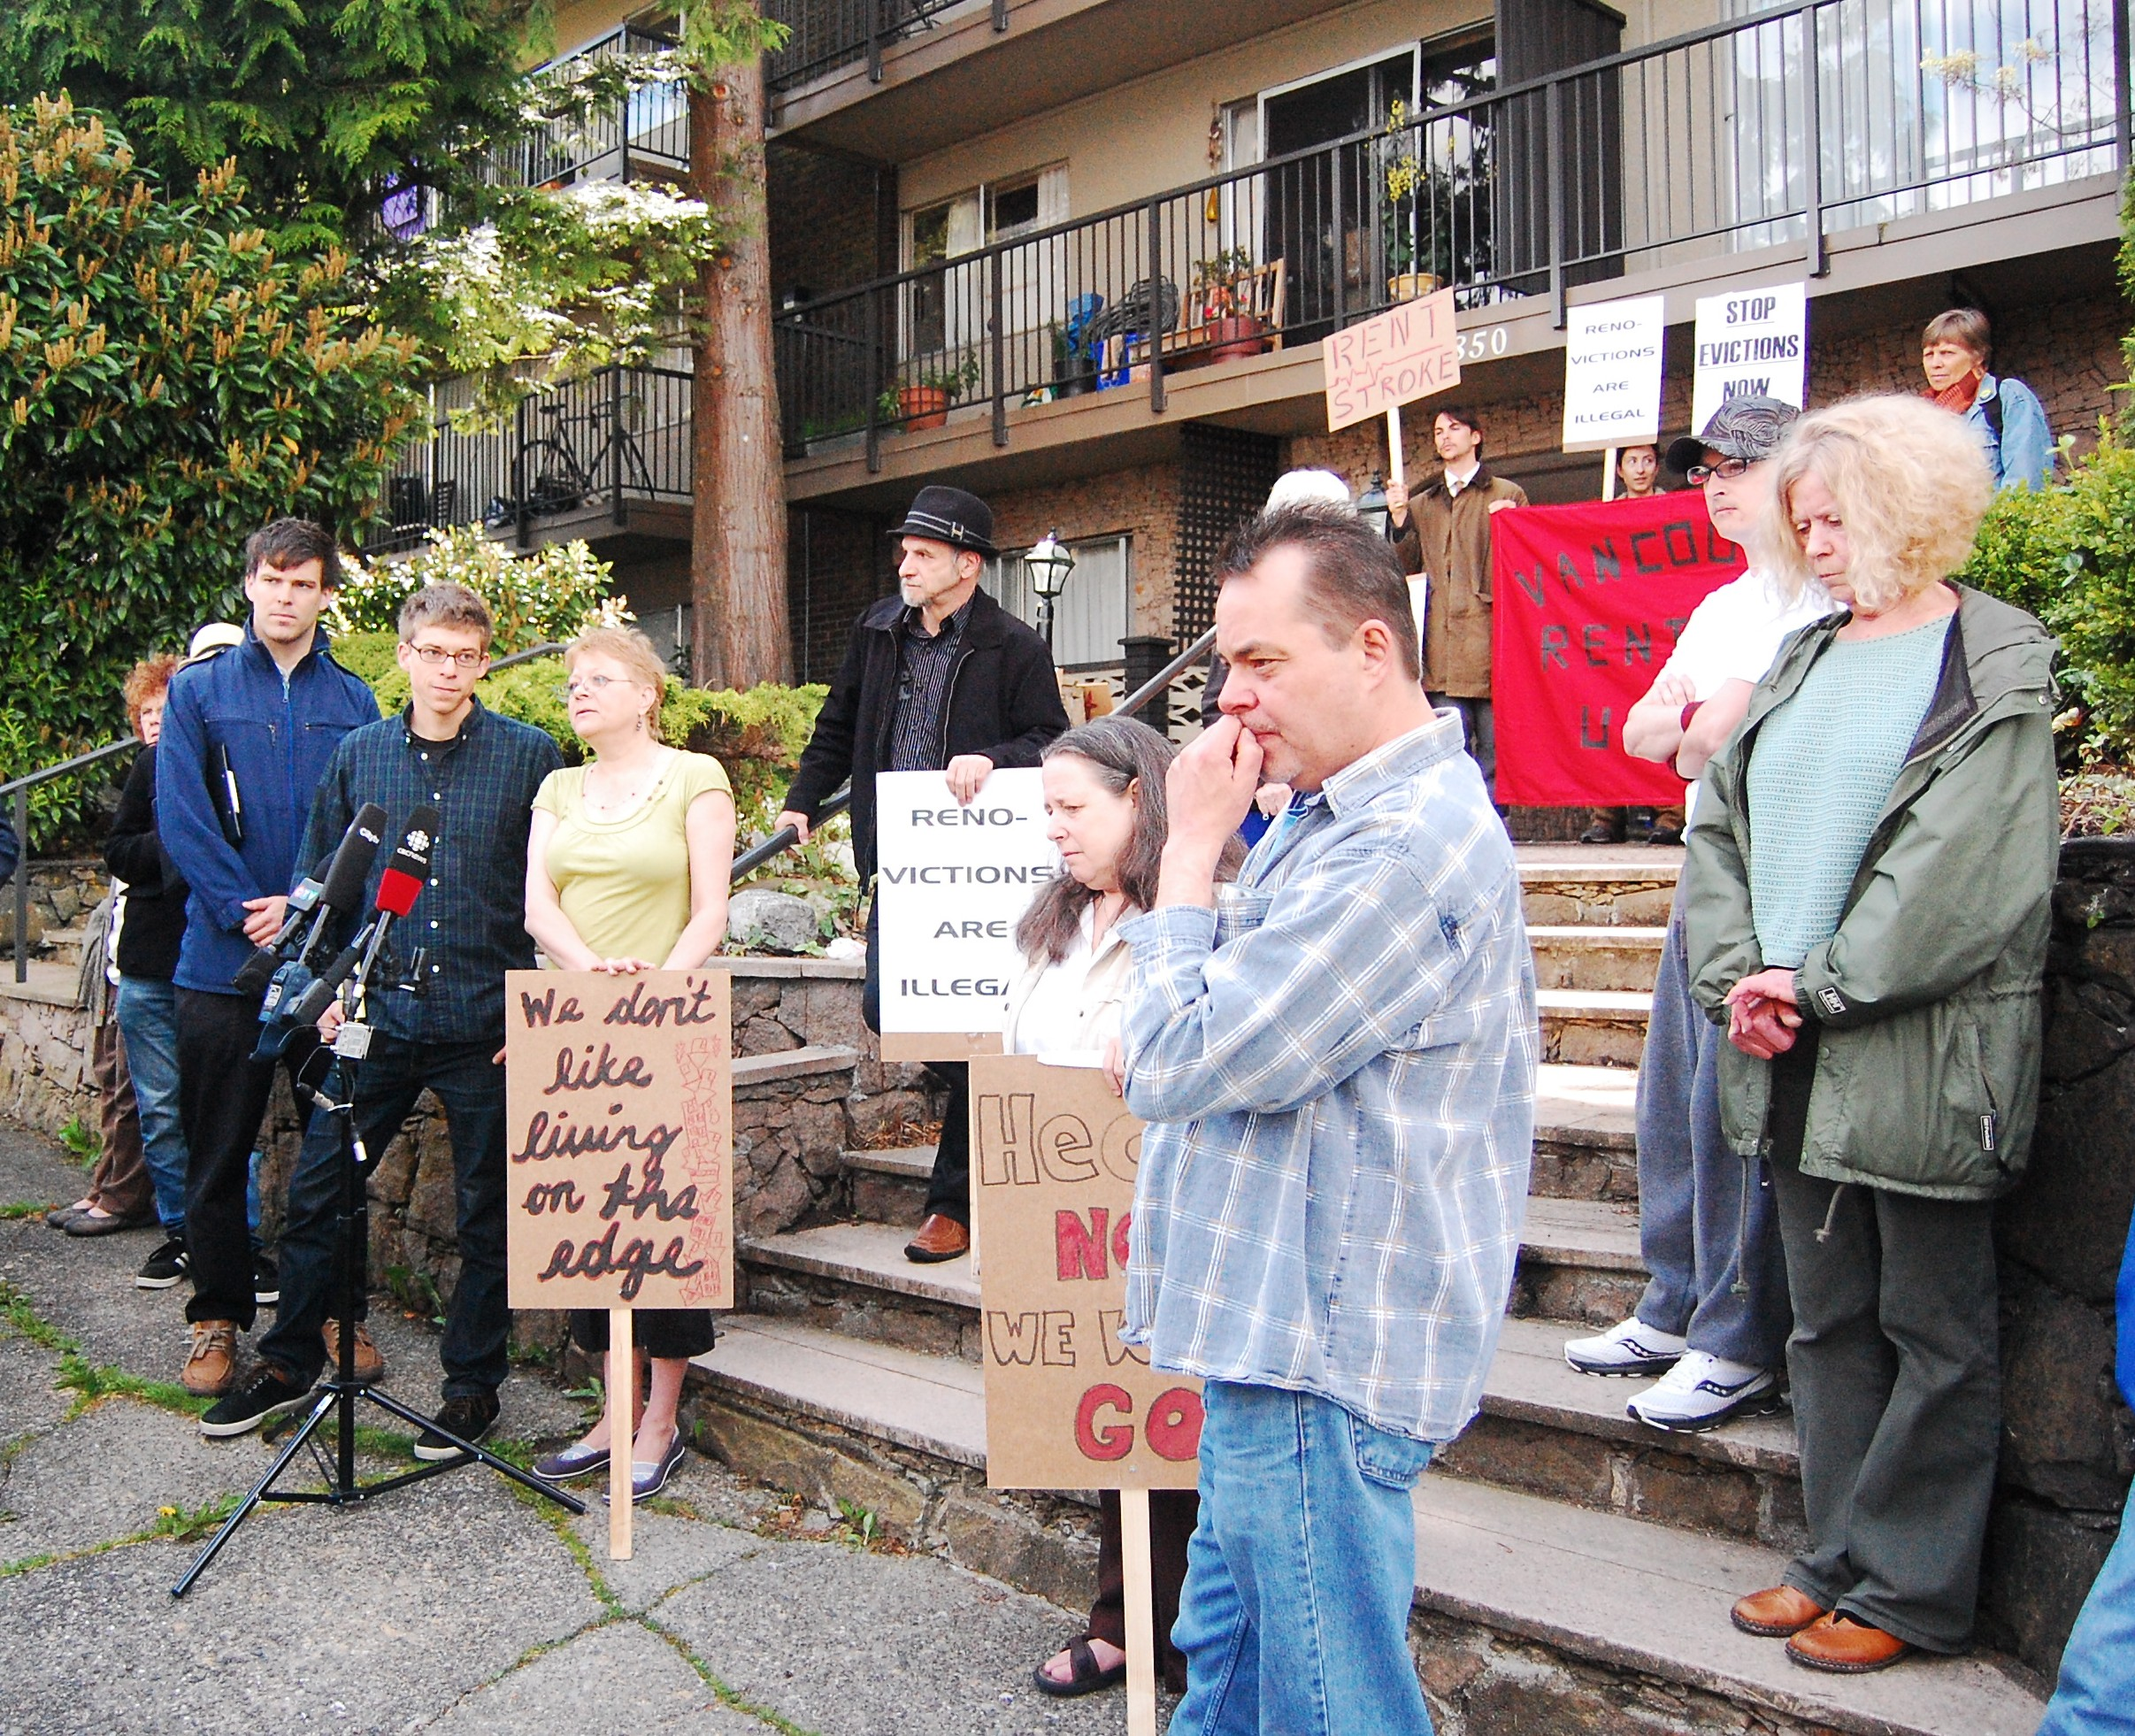 Slumlords throw weight behind Vision Vancouver re-election